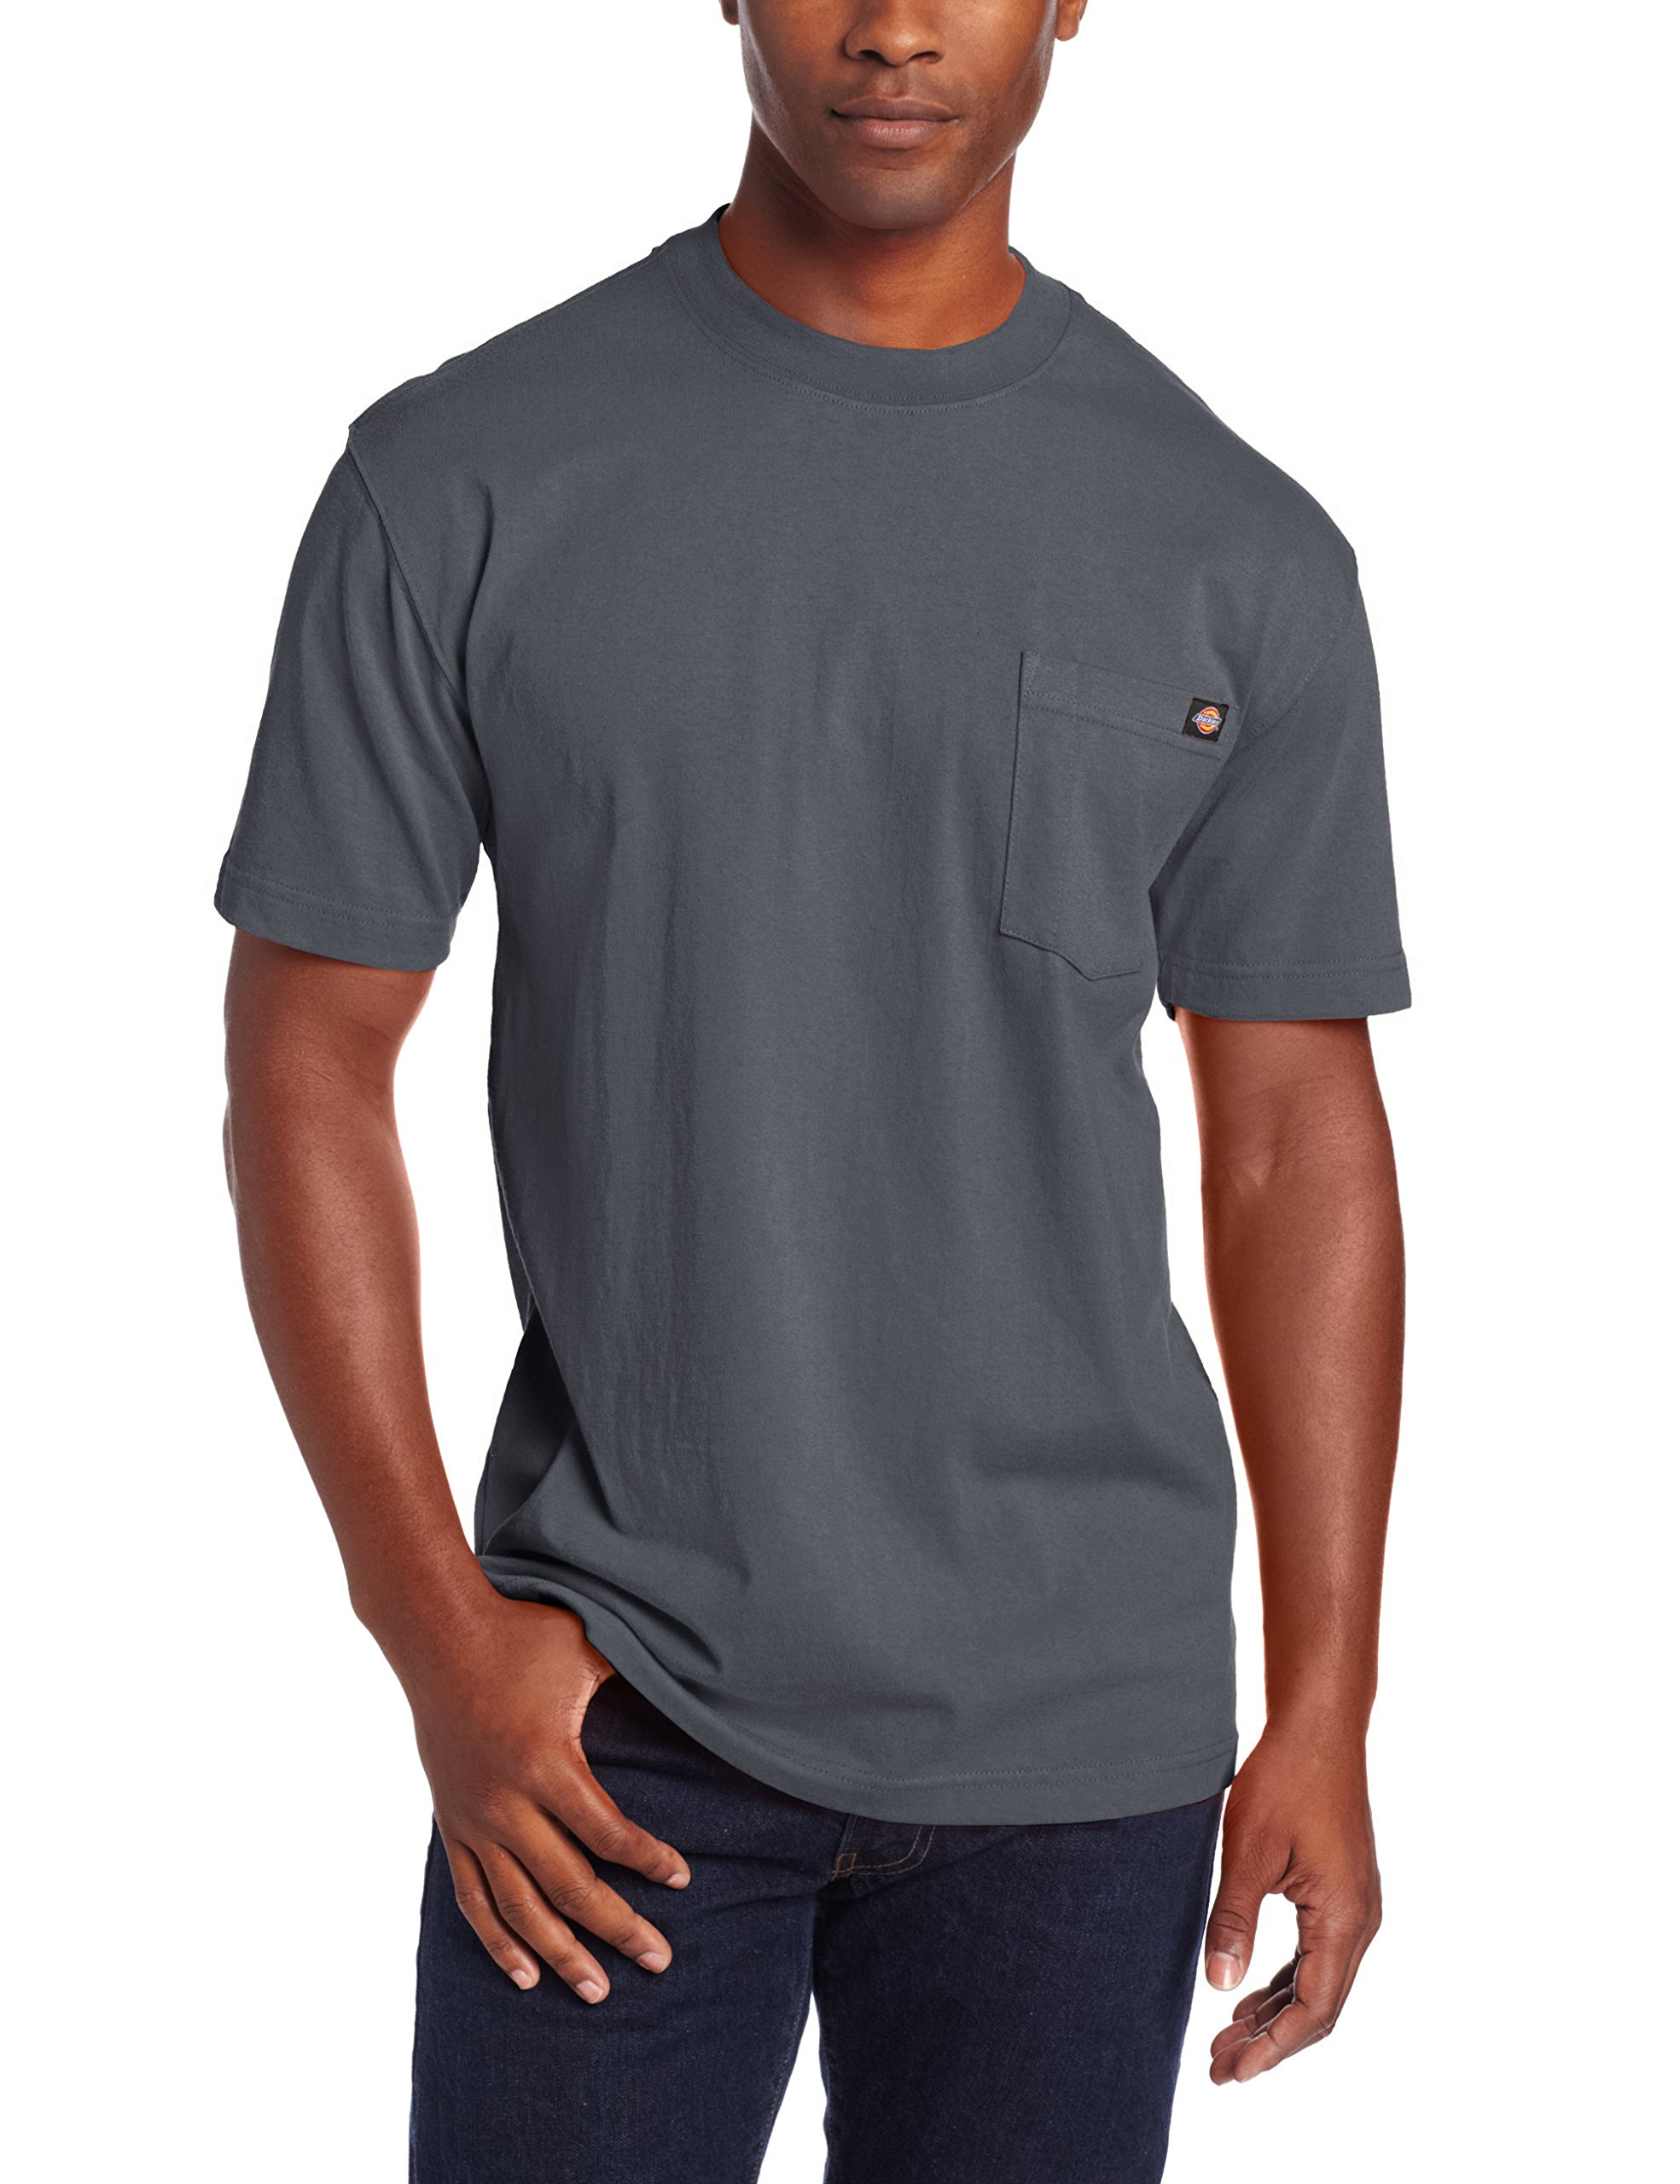 Dickie's Men's Heavyweight Crew Neck Short Sleeve Tee Big-tall,Charcoal,2X-Large Tall by Dickies (Image #1)